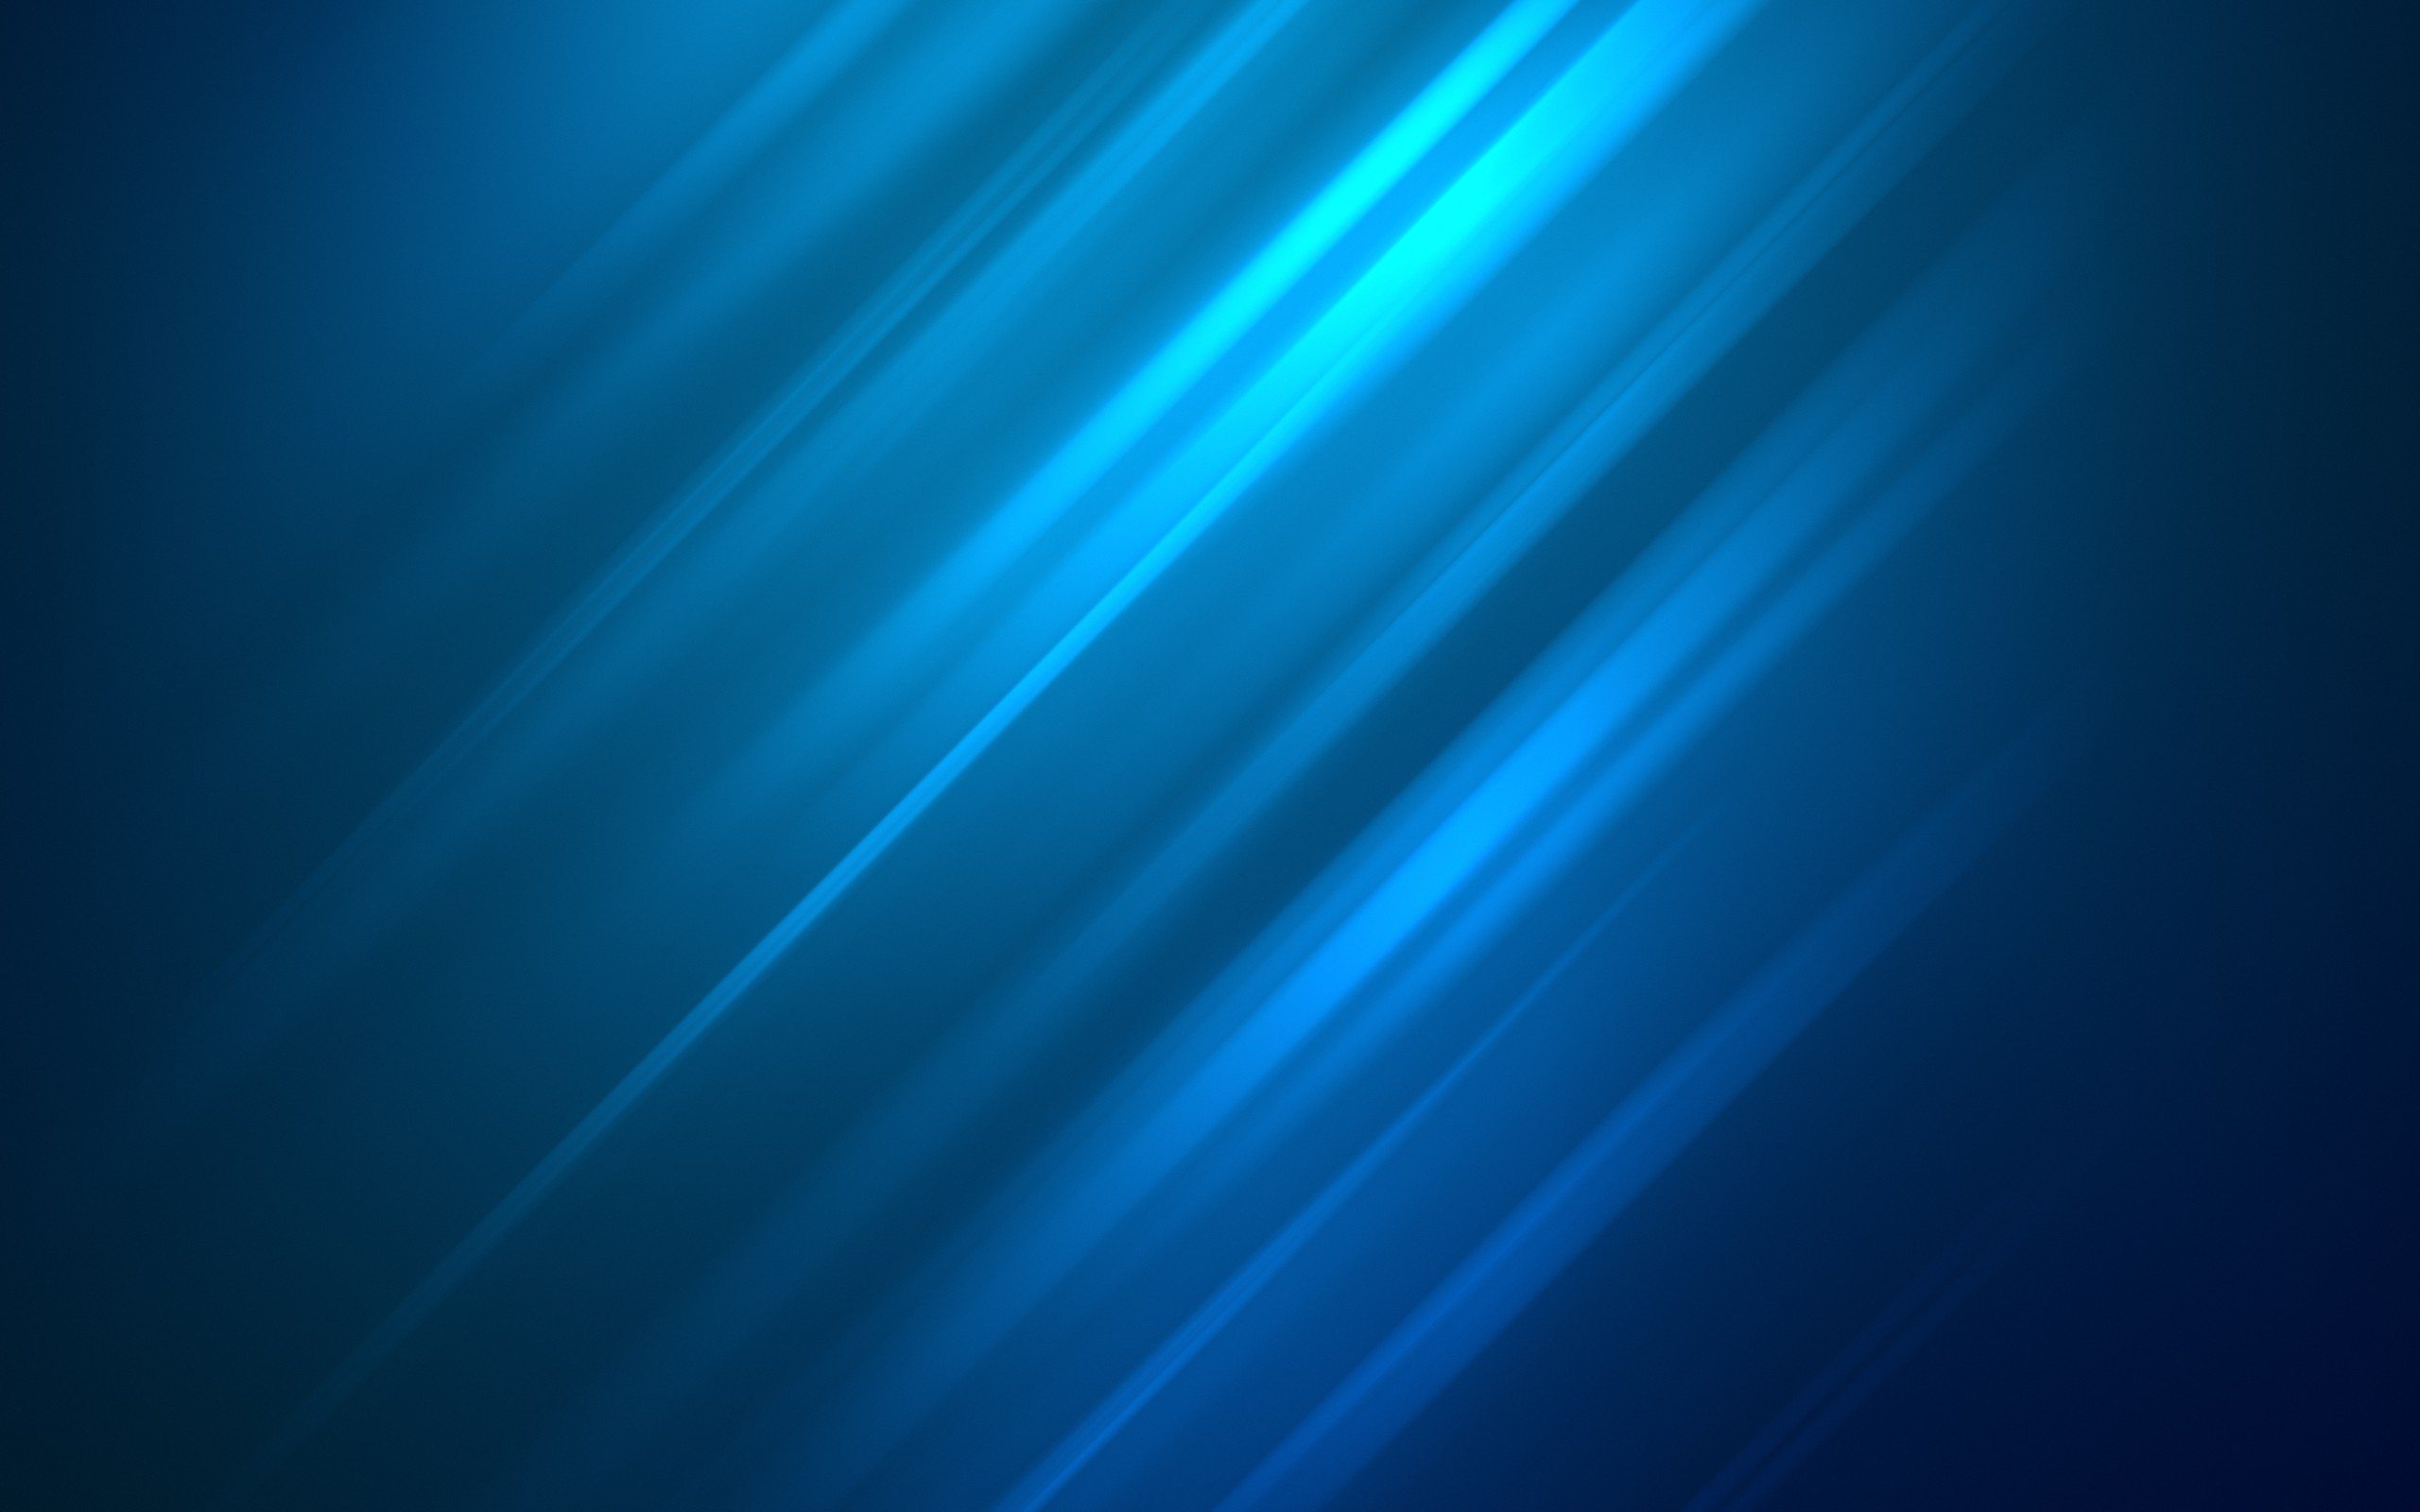 Dark Blue Abstract Wallpaper Desktop Wallpaper 2560x1600